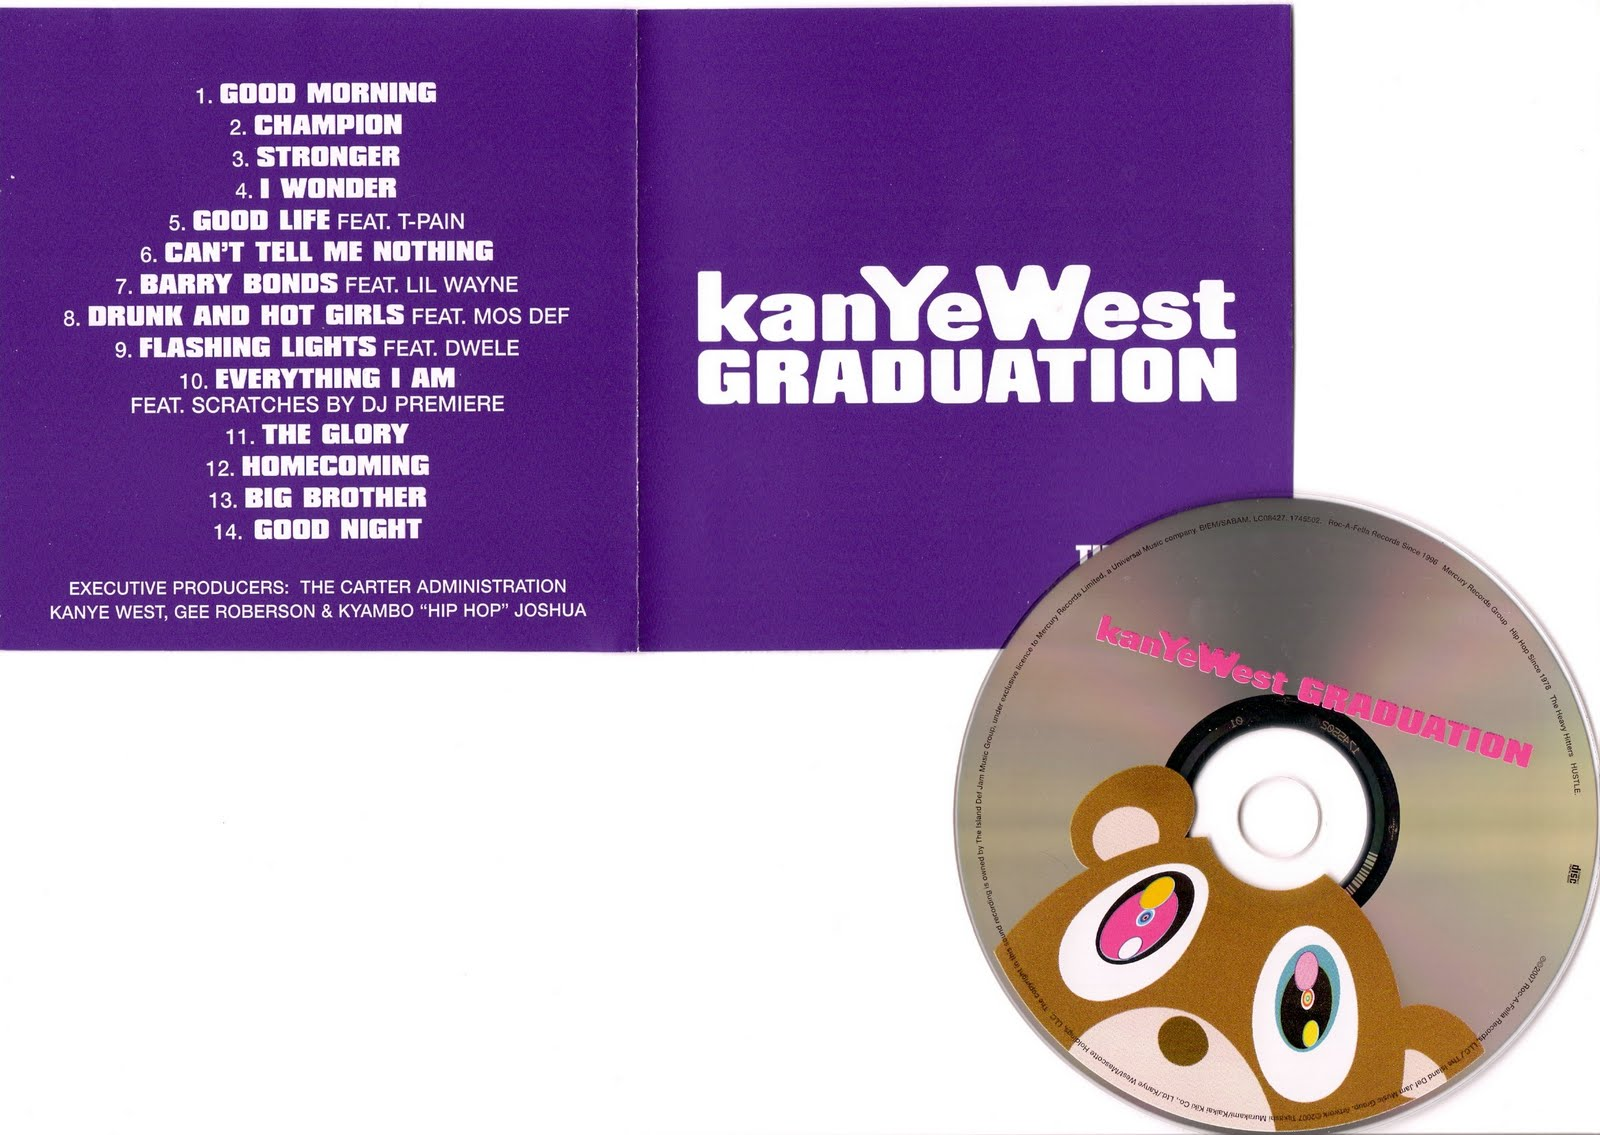 kanye west graduation quotes,kanye west graduation lyrics,favorite kanye west quotes,50 cent quotes,kanye west myspace quotes,kanye west lyrics quotes,kanye west inspirational quotes,kanye west graduation songs,